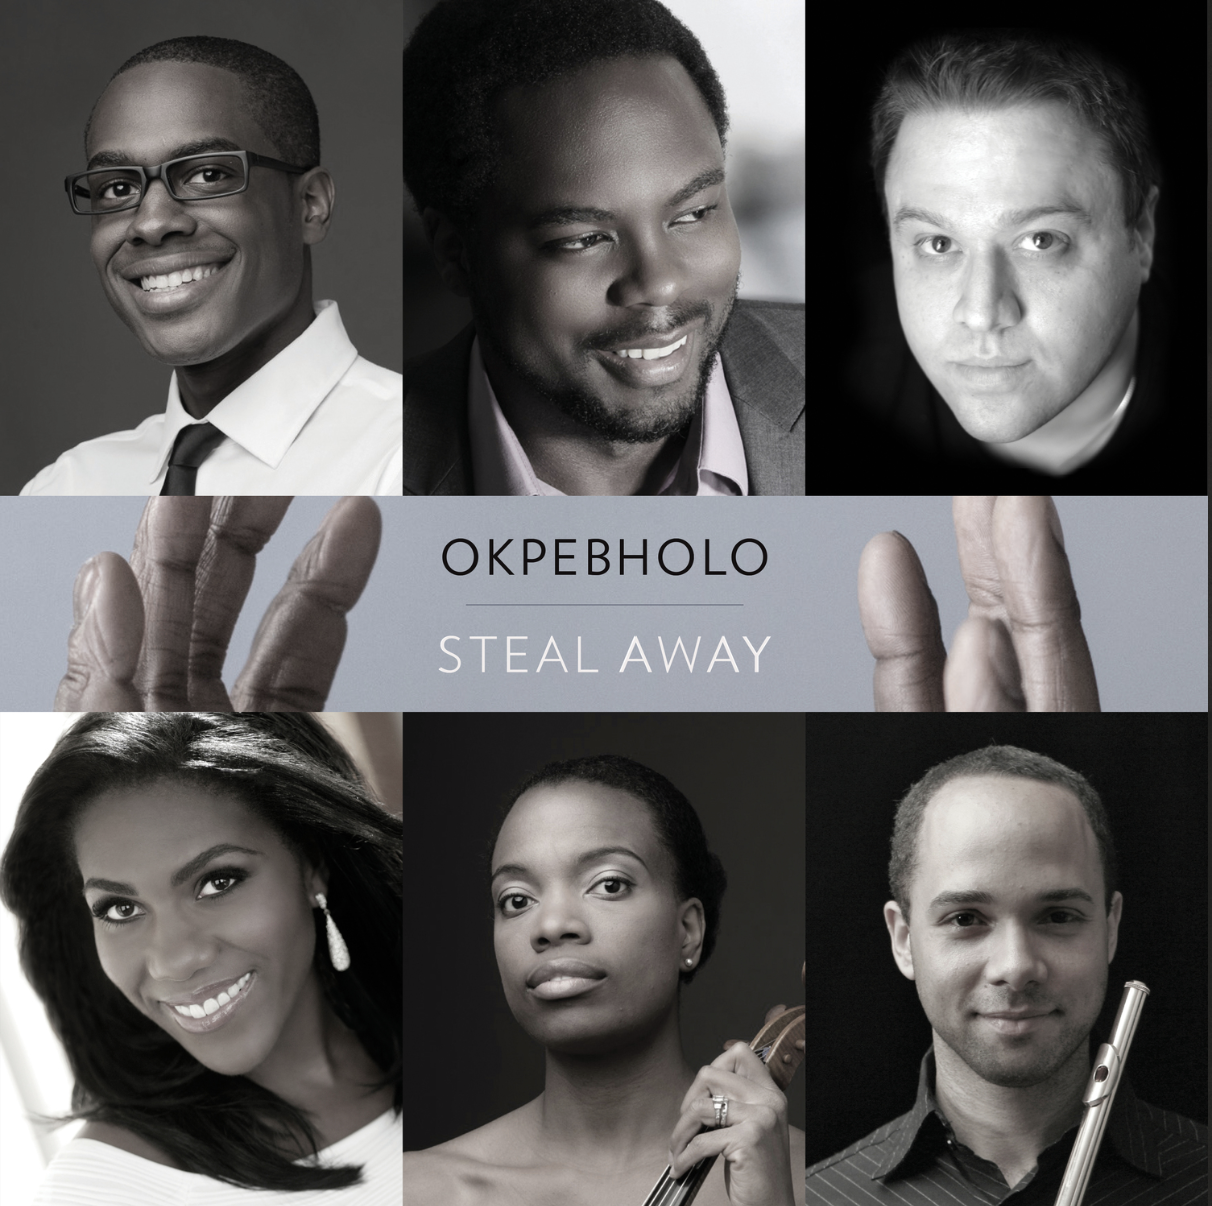 From Okpebholo's album